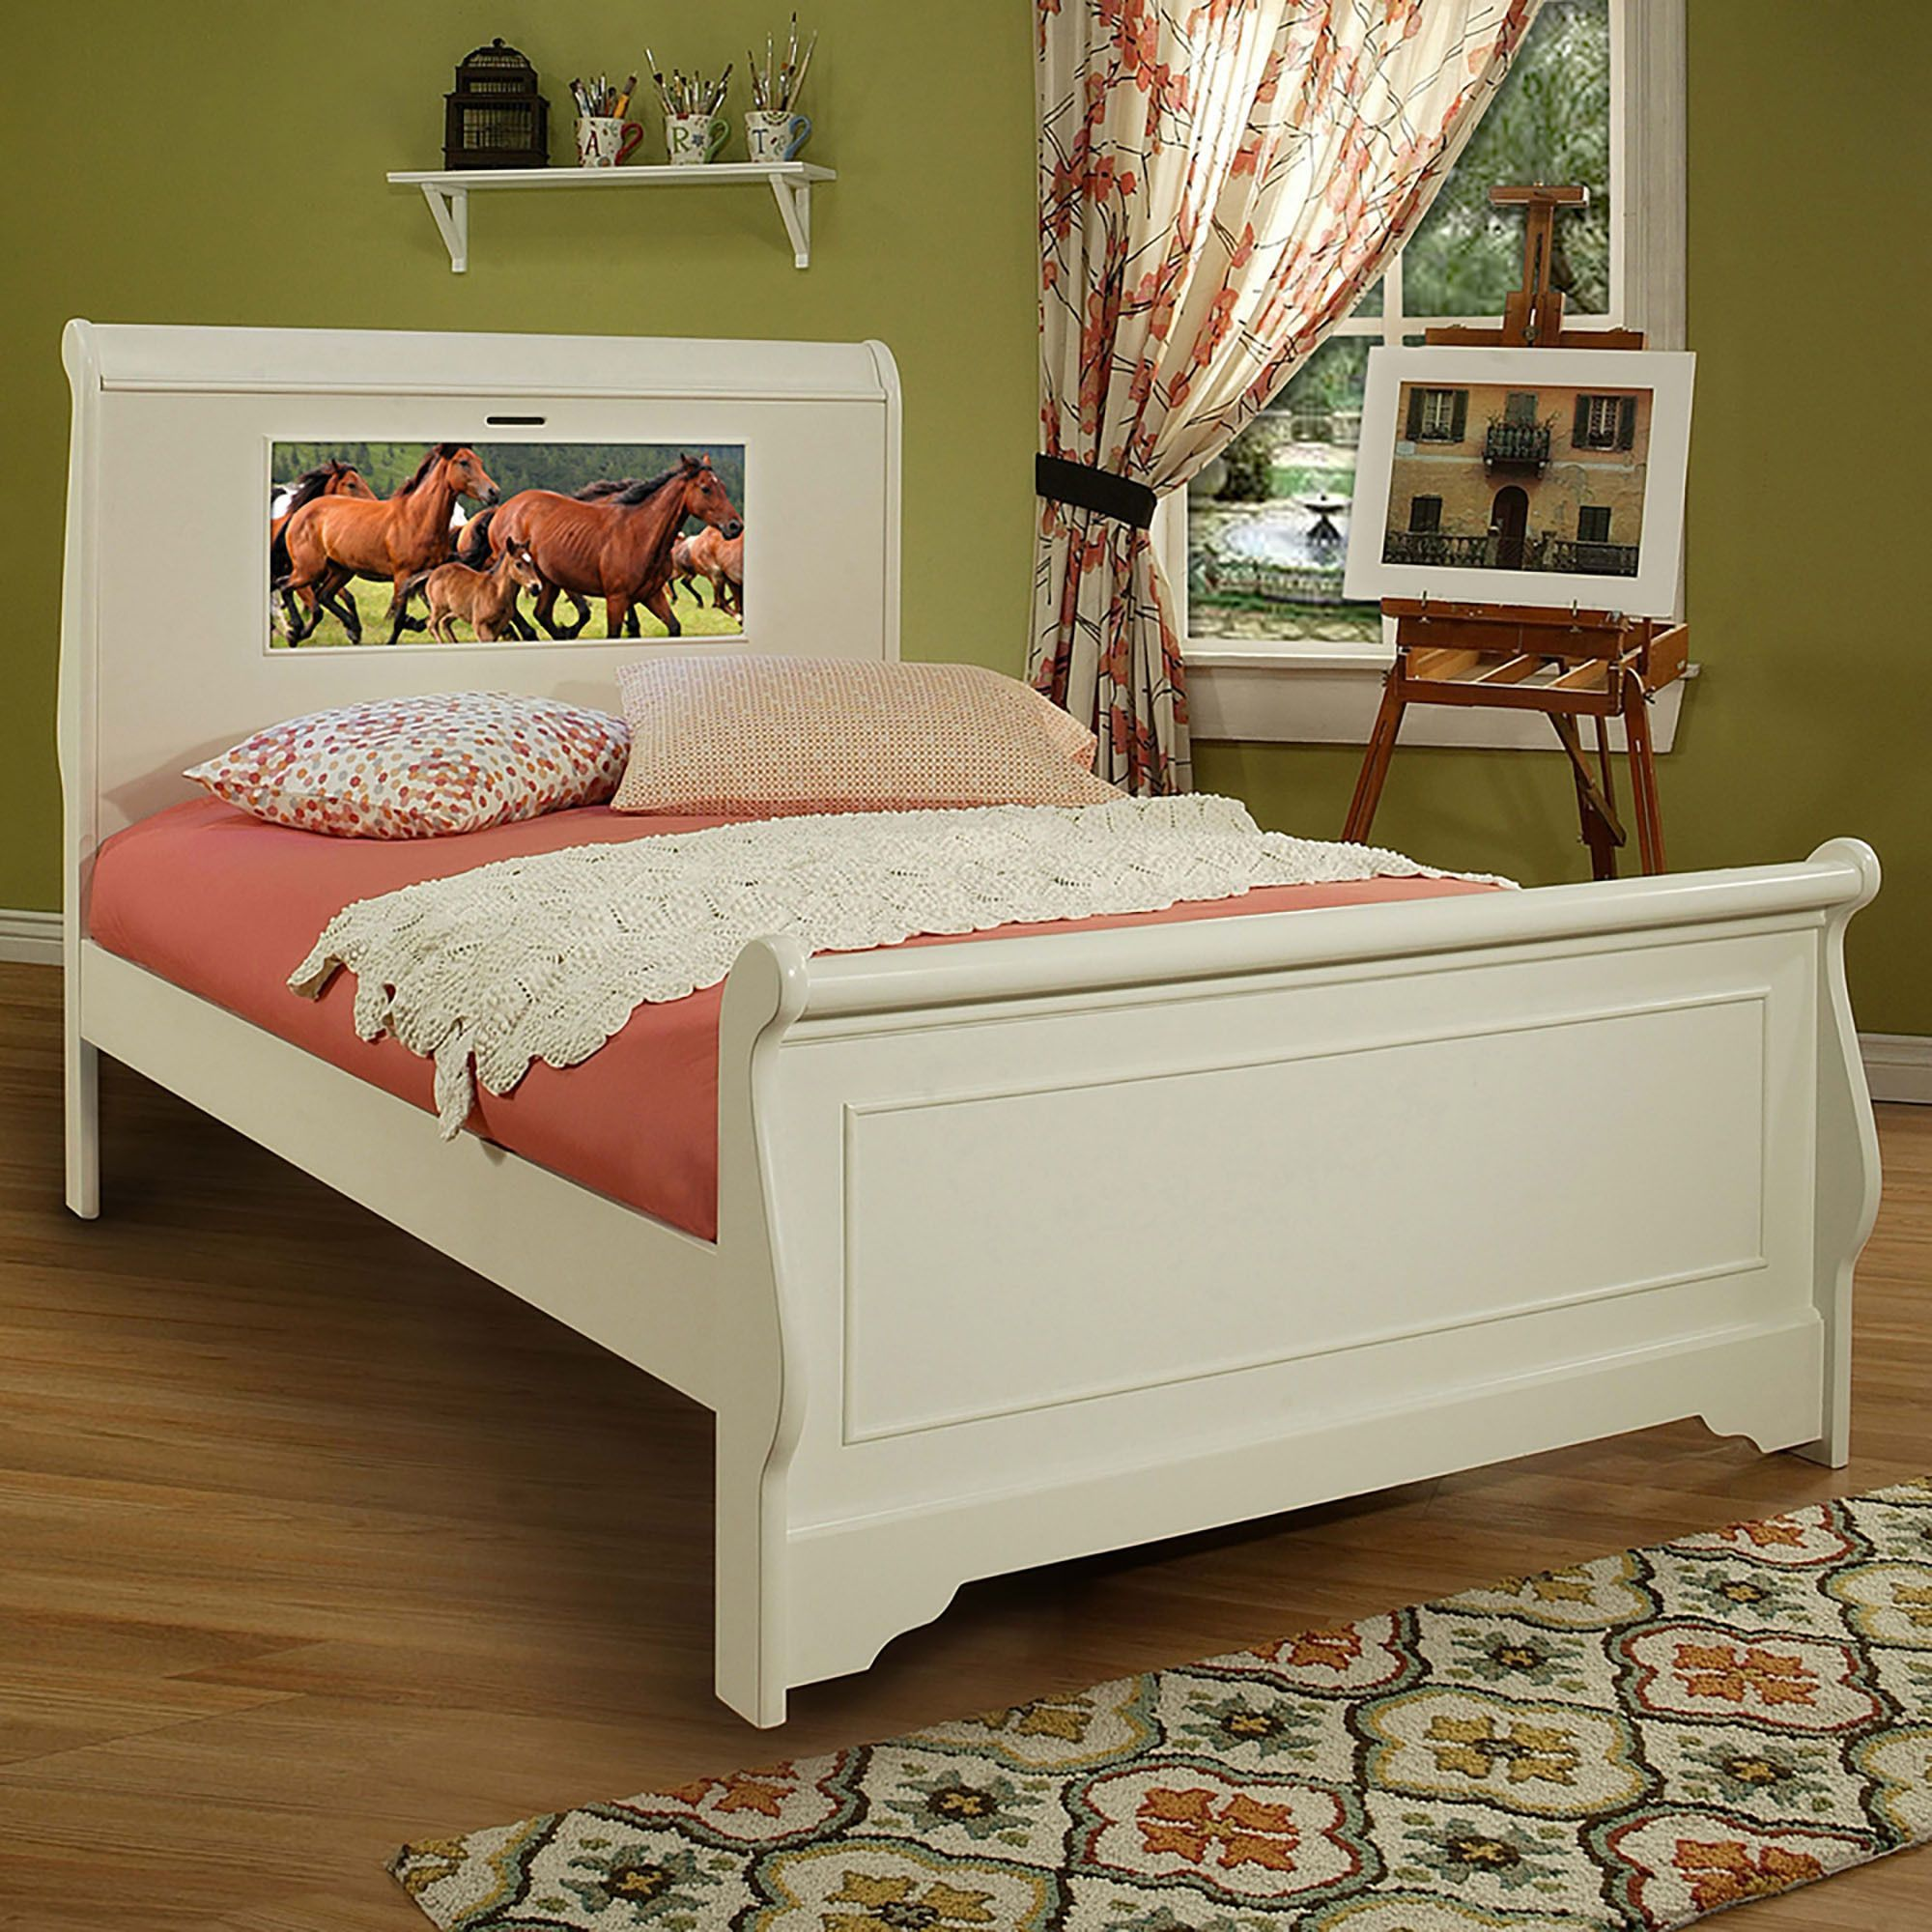 Lightheaded Beds Edgewood Full Sleigh Bed In Satin White With